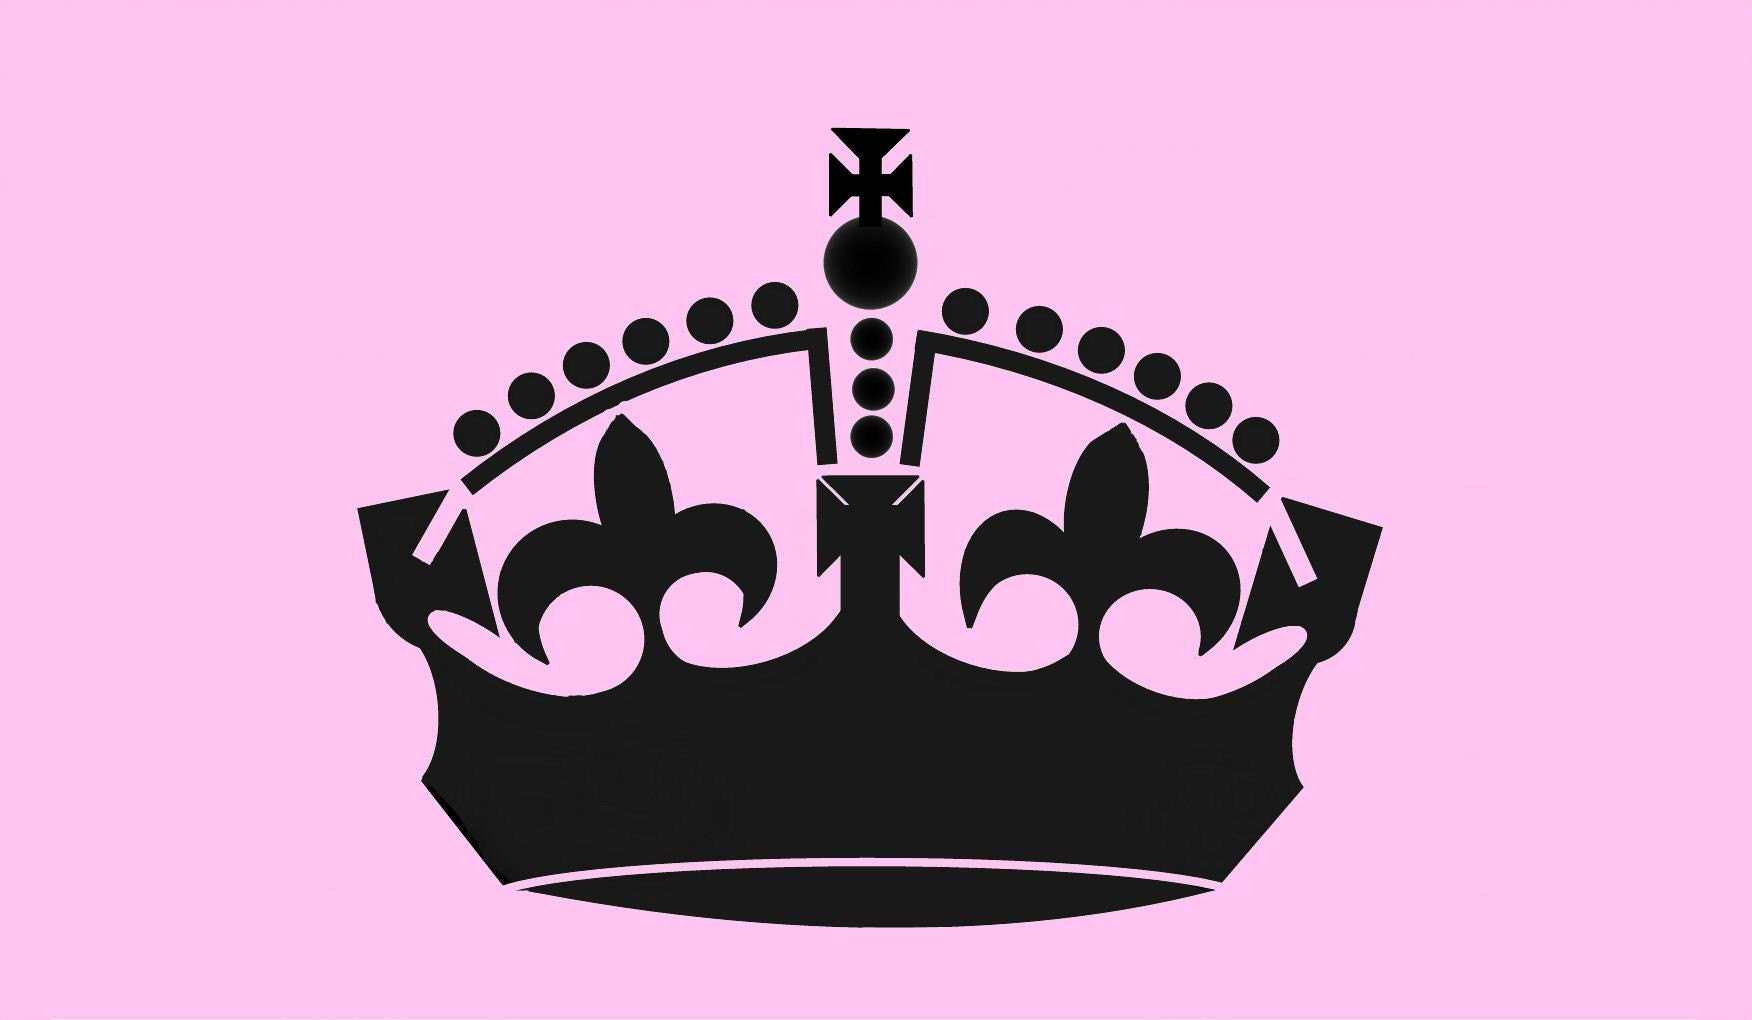 Royal Crown Reusable Stencil 4 Wall Art Home Decor Wall Mural